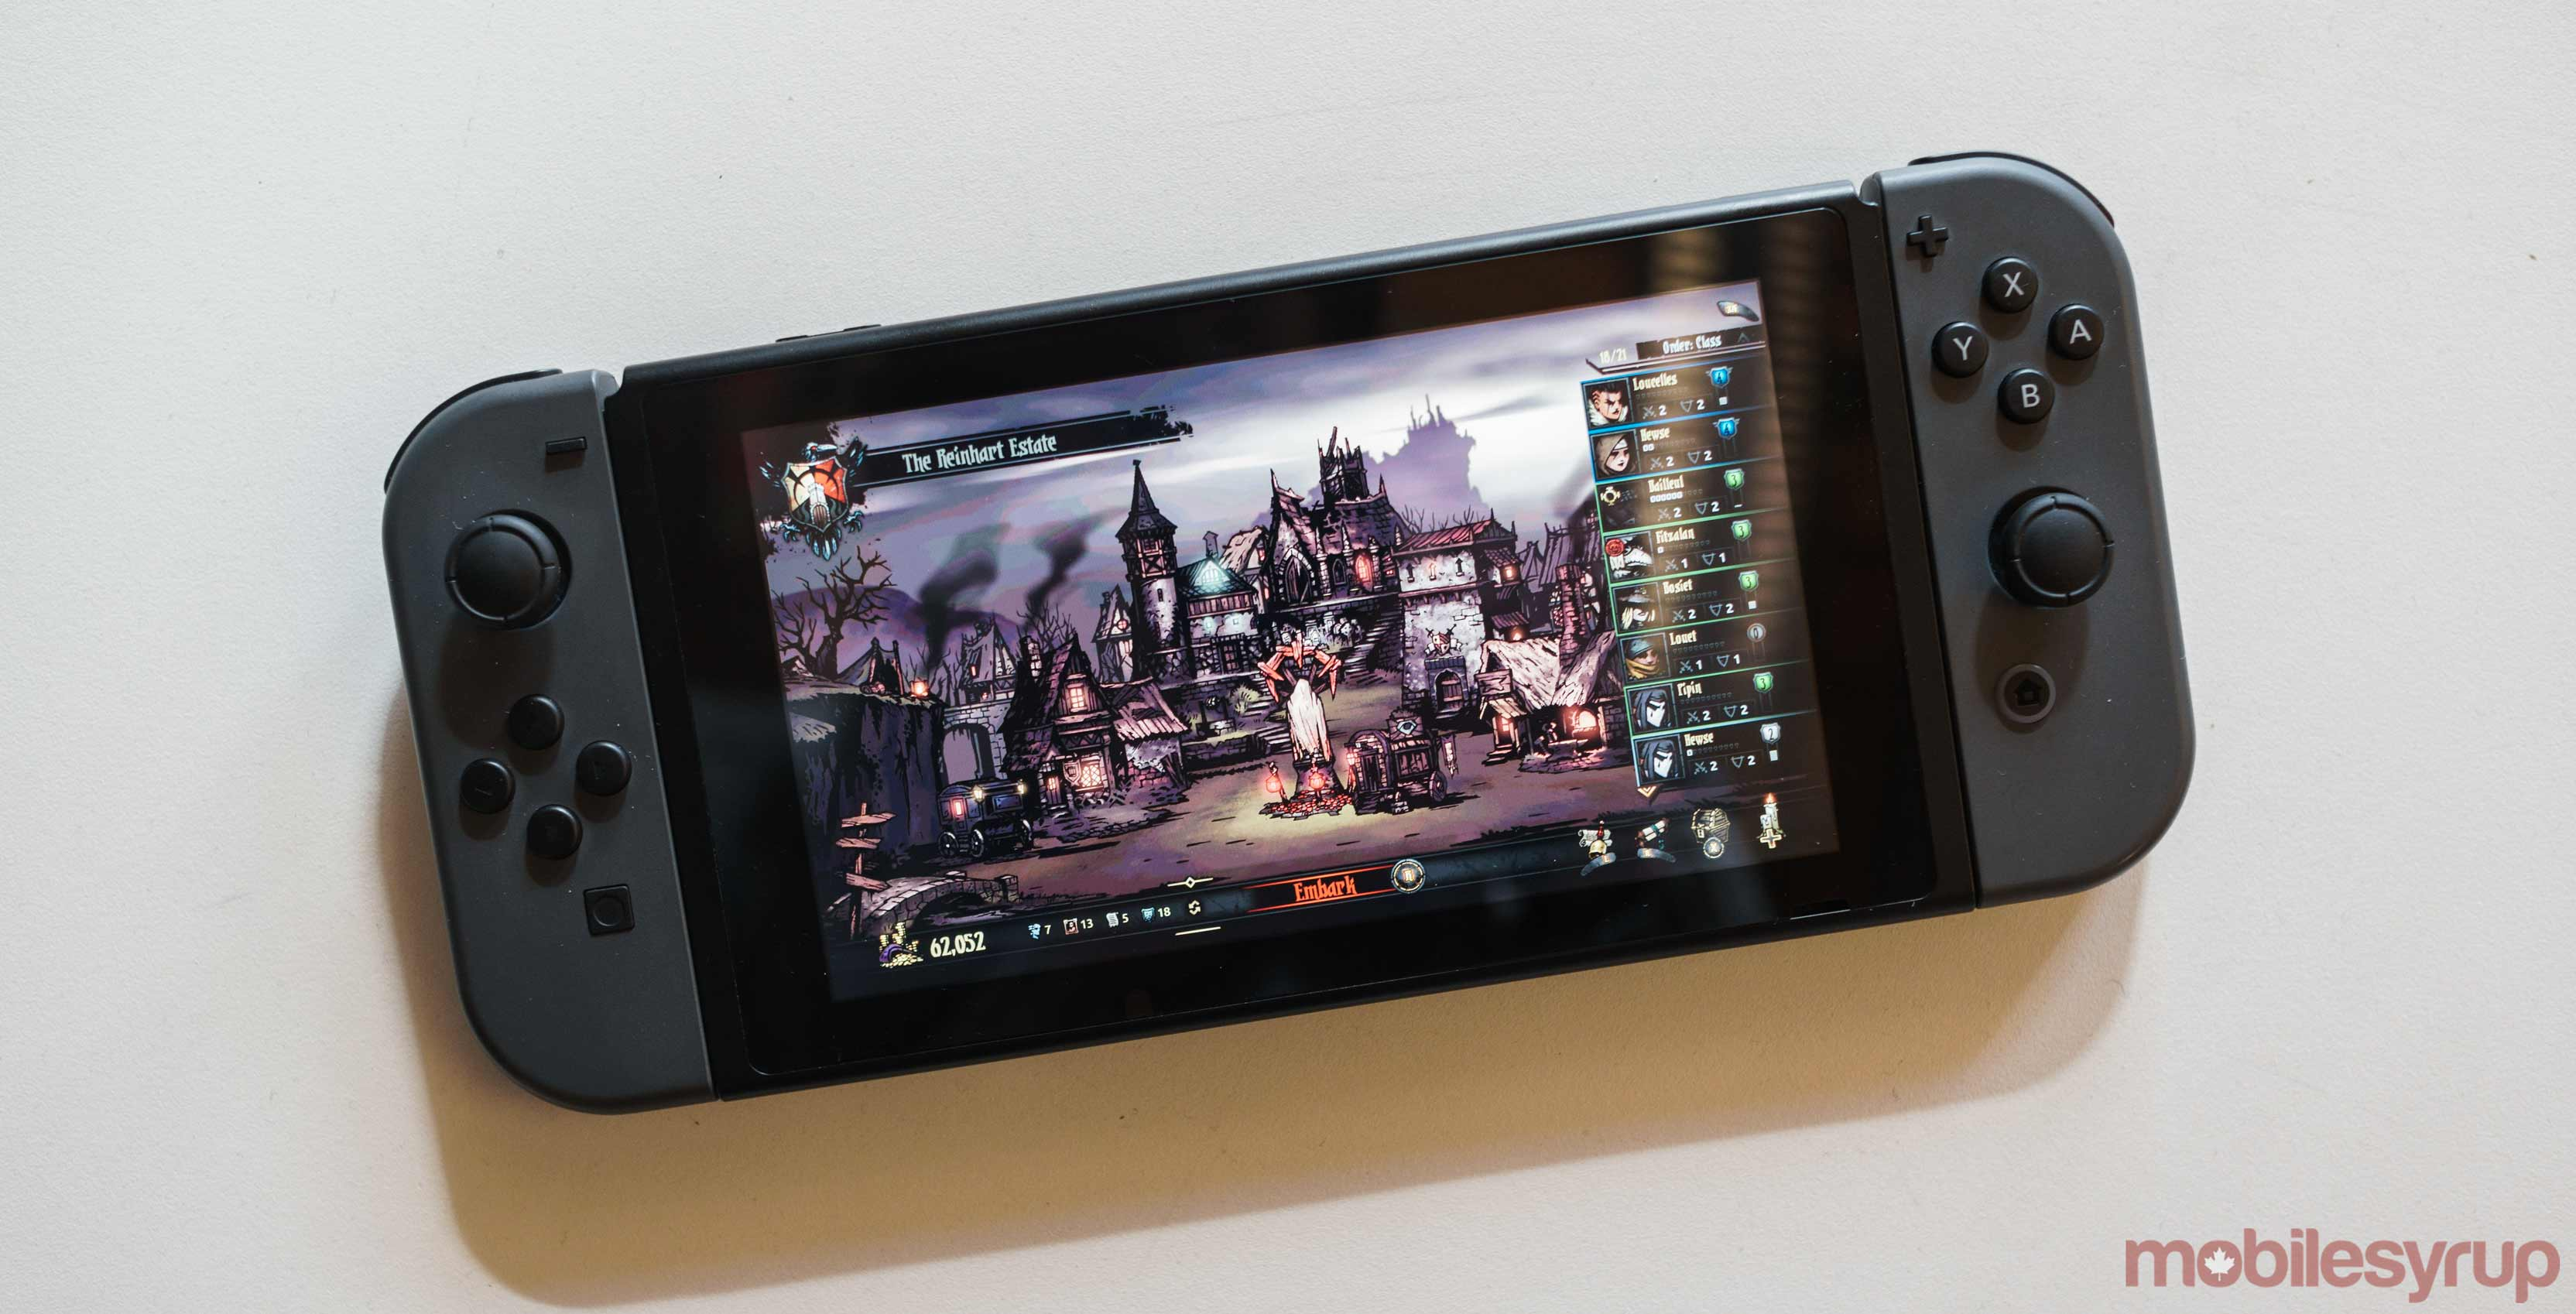 Darkest Dungeon recently released on the Switch